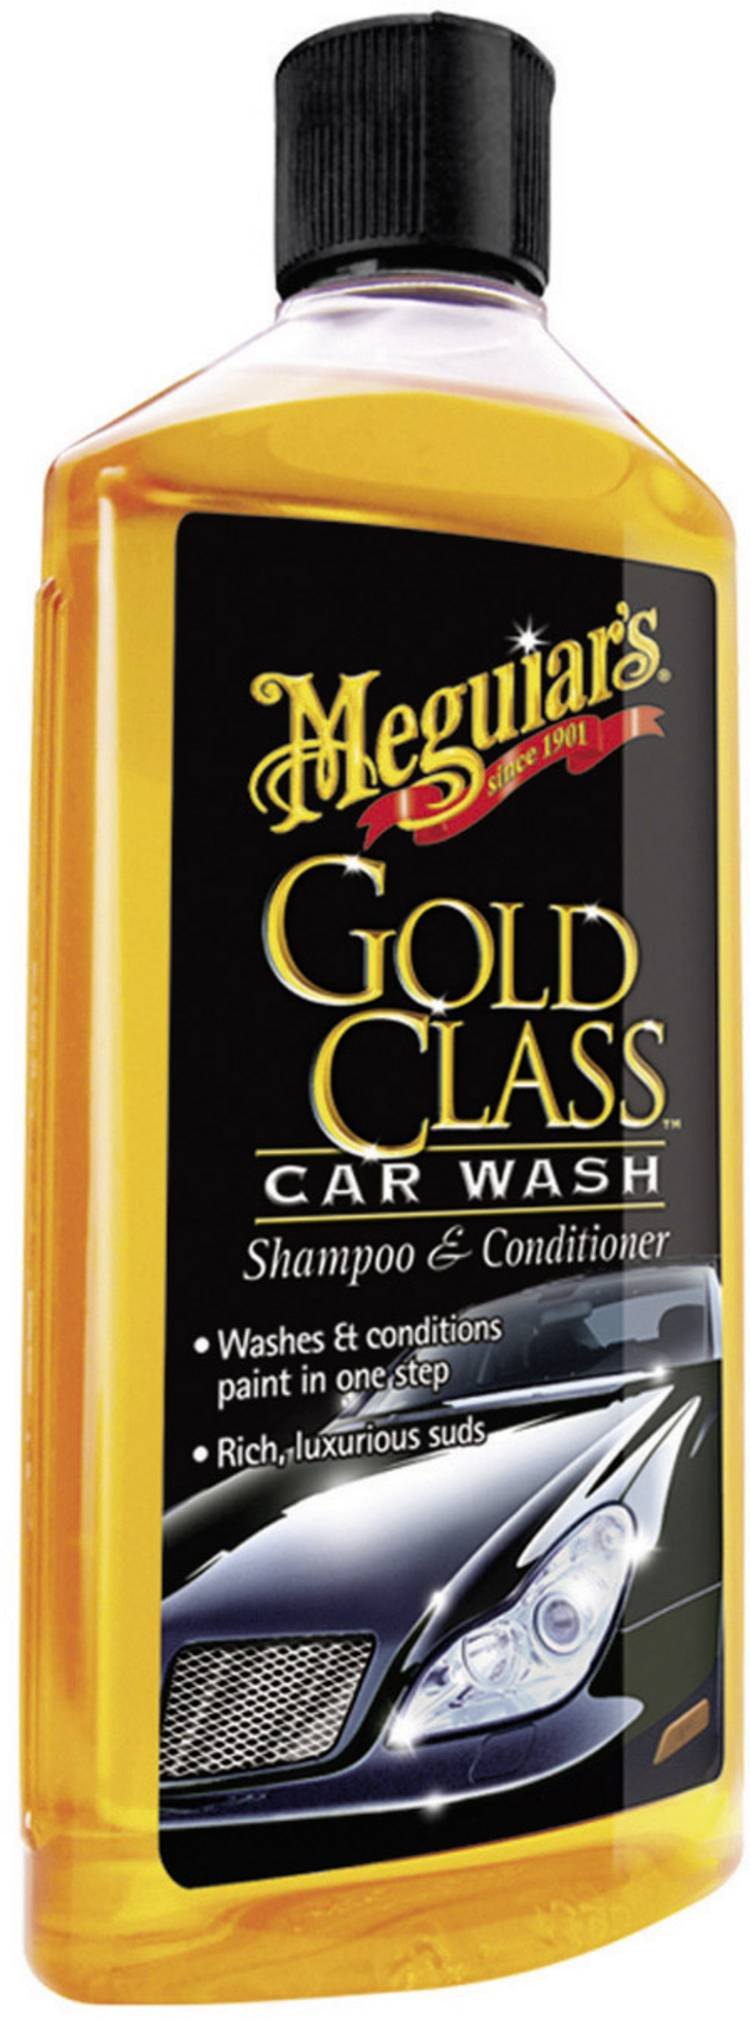 Image of Gold Class Car Wash-autoshampoo 473 ml Meguiars Gold Class Car Wash G7116